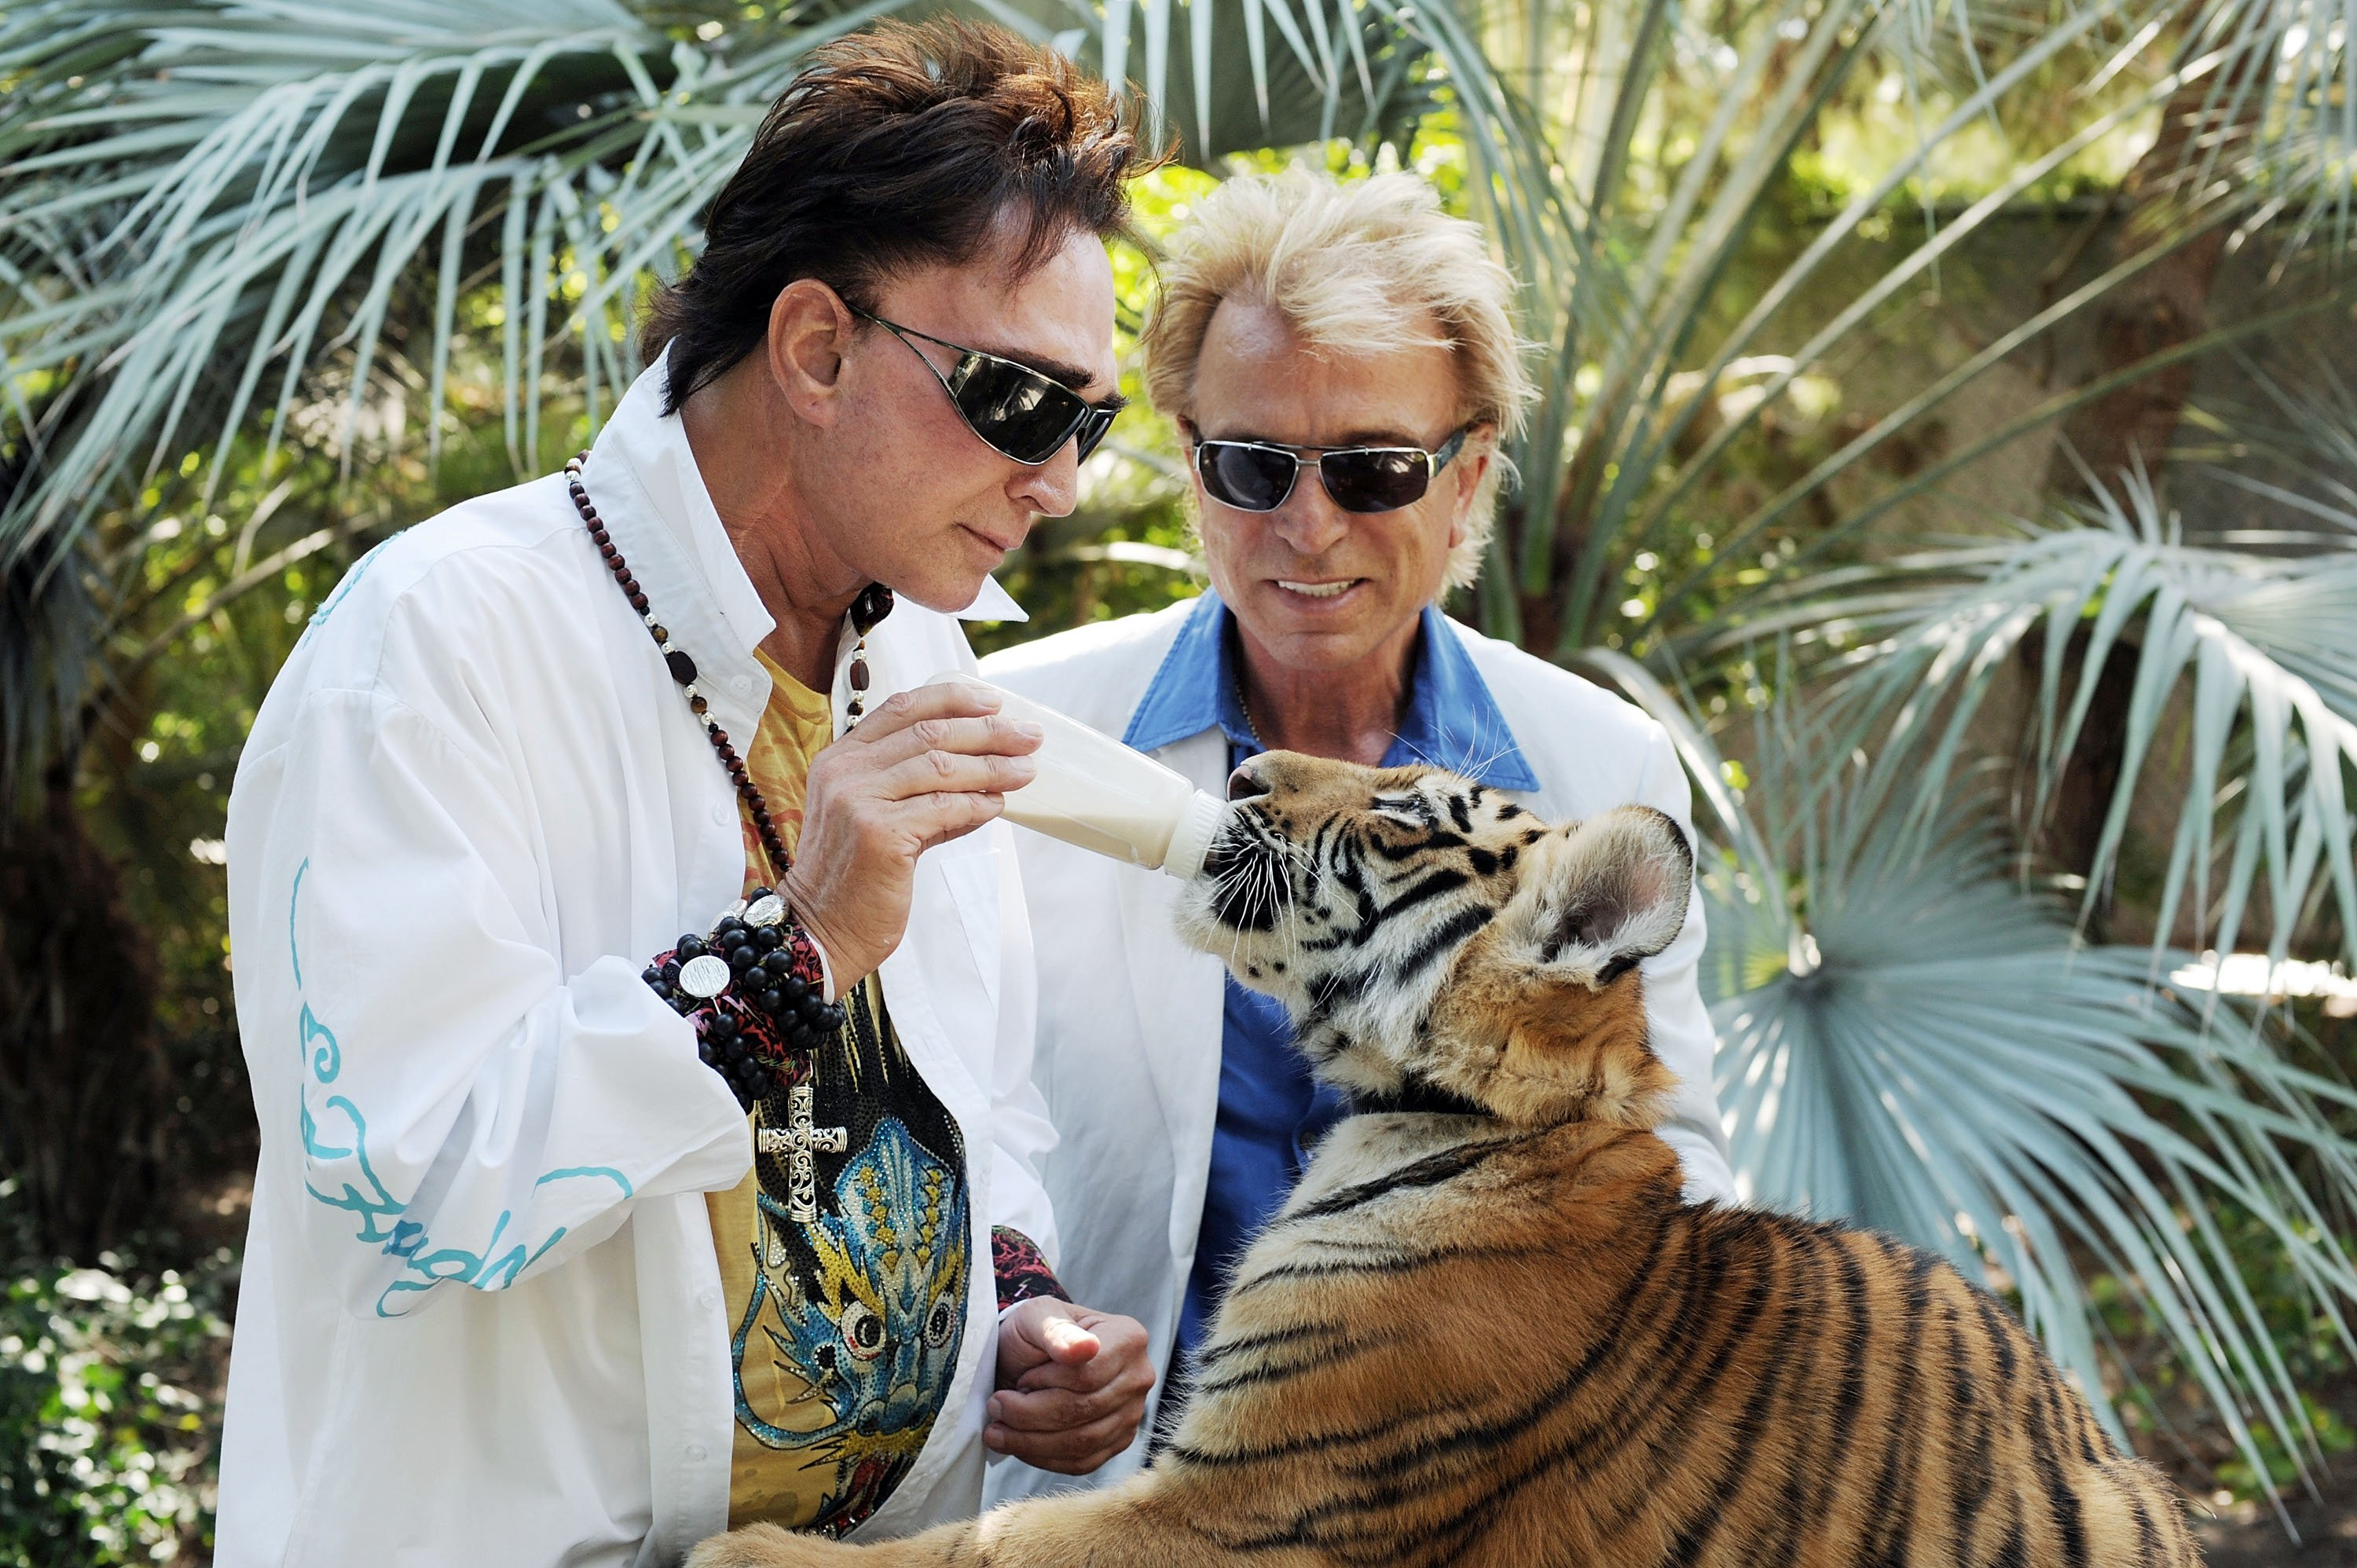 Siegfried Fischbacher and Roy Horn feeding one of their tiger cubs in Las Vegas in August, 2008. | Photo: Getty Images.